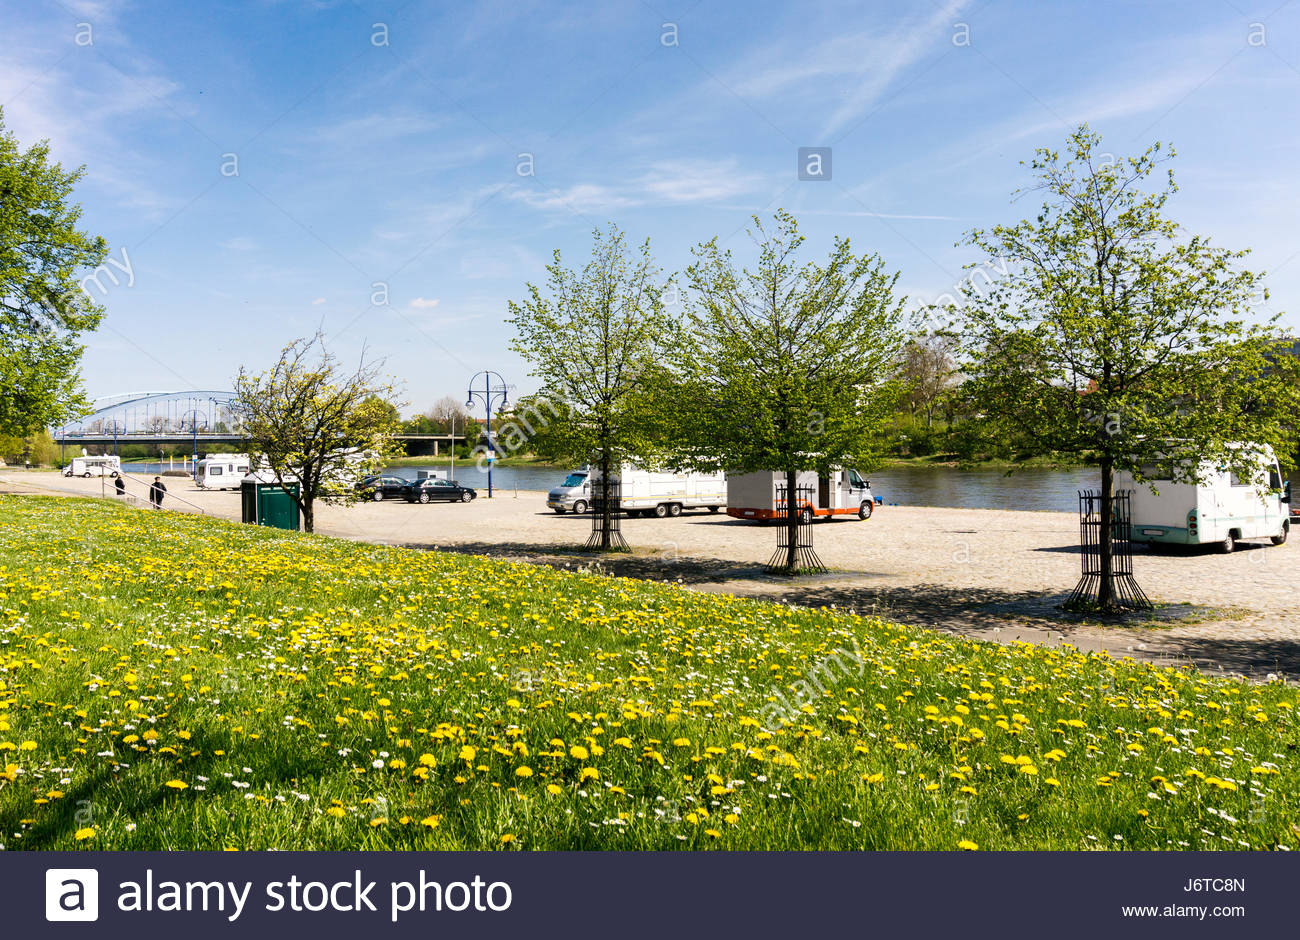 Camping Place In Magdeburg Germany